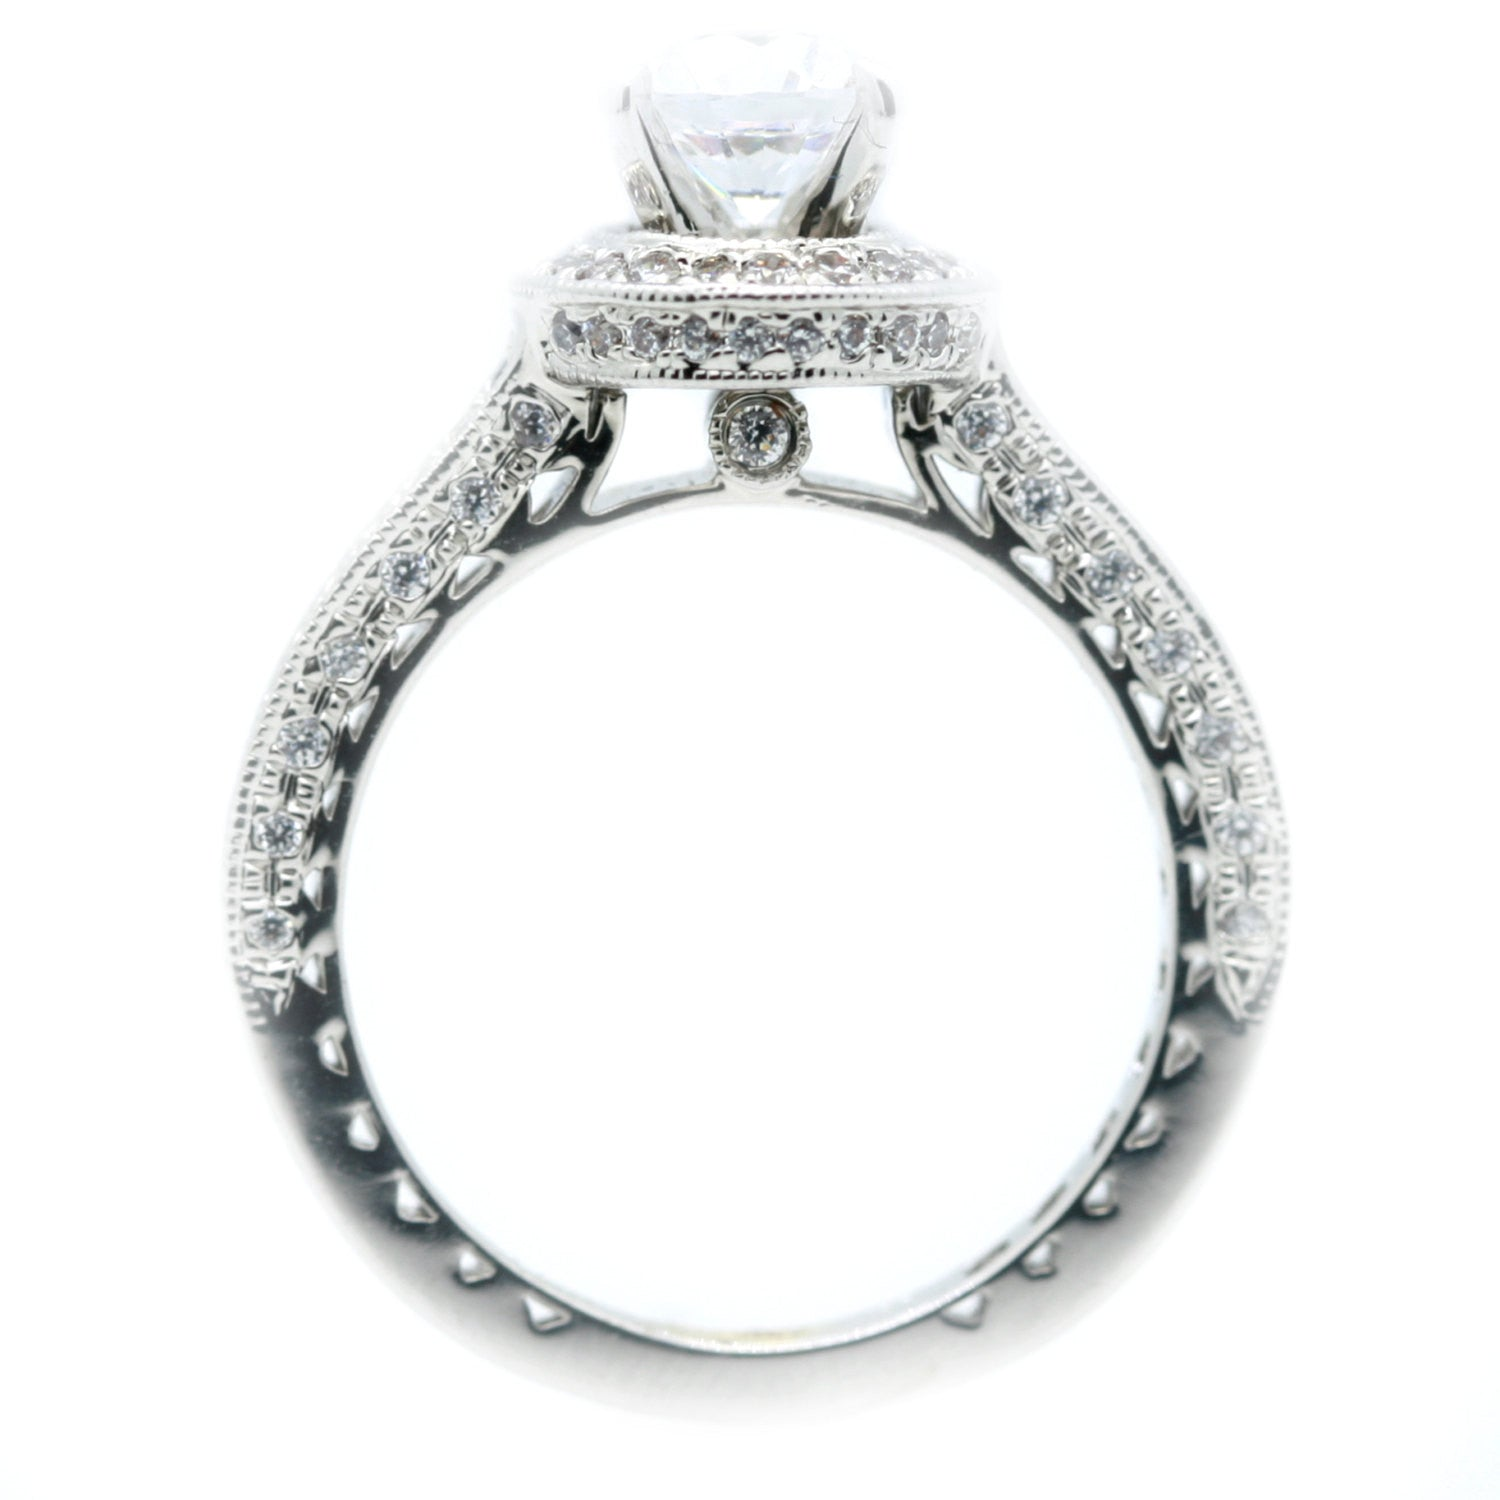 1 Carat Moissanite Center Stone, .75 Carat Diamonds Accent Stones, Unique Halo Engagement Ring, Anniversary Ring - FB76521